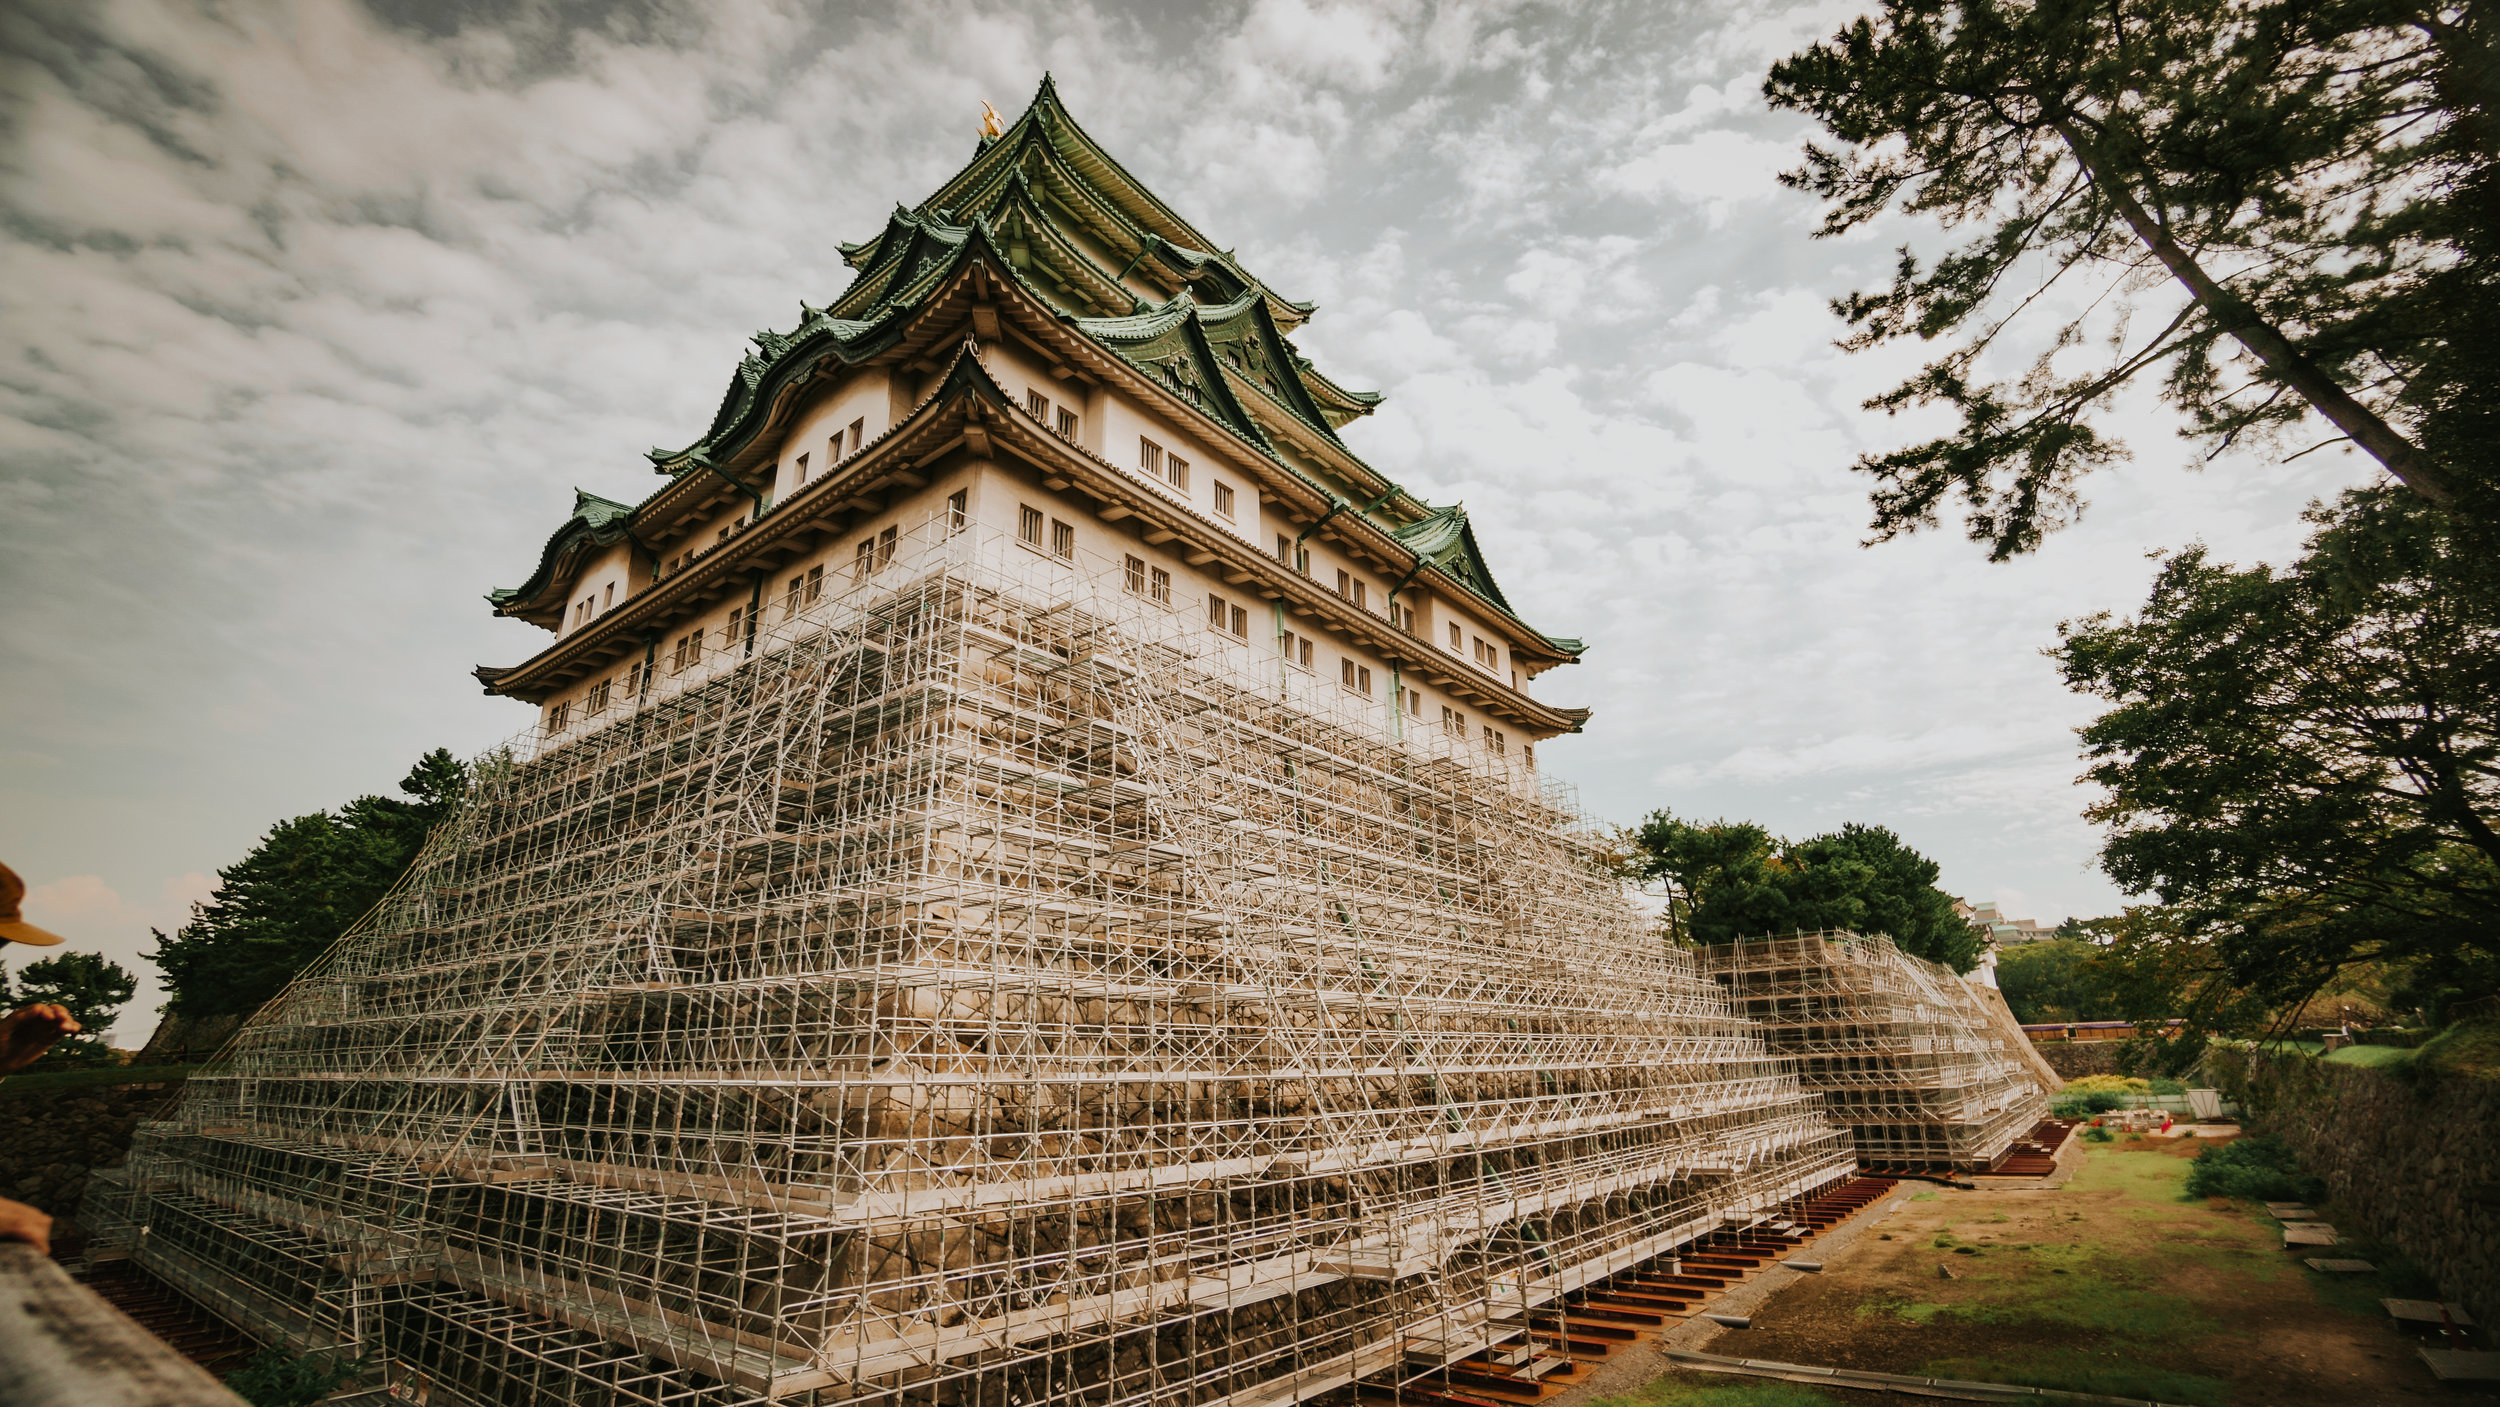 polywander-what-to-do-in-nagoya-japan-castle.jpeg